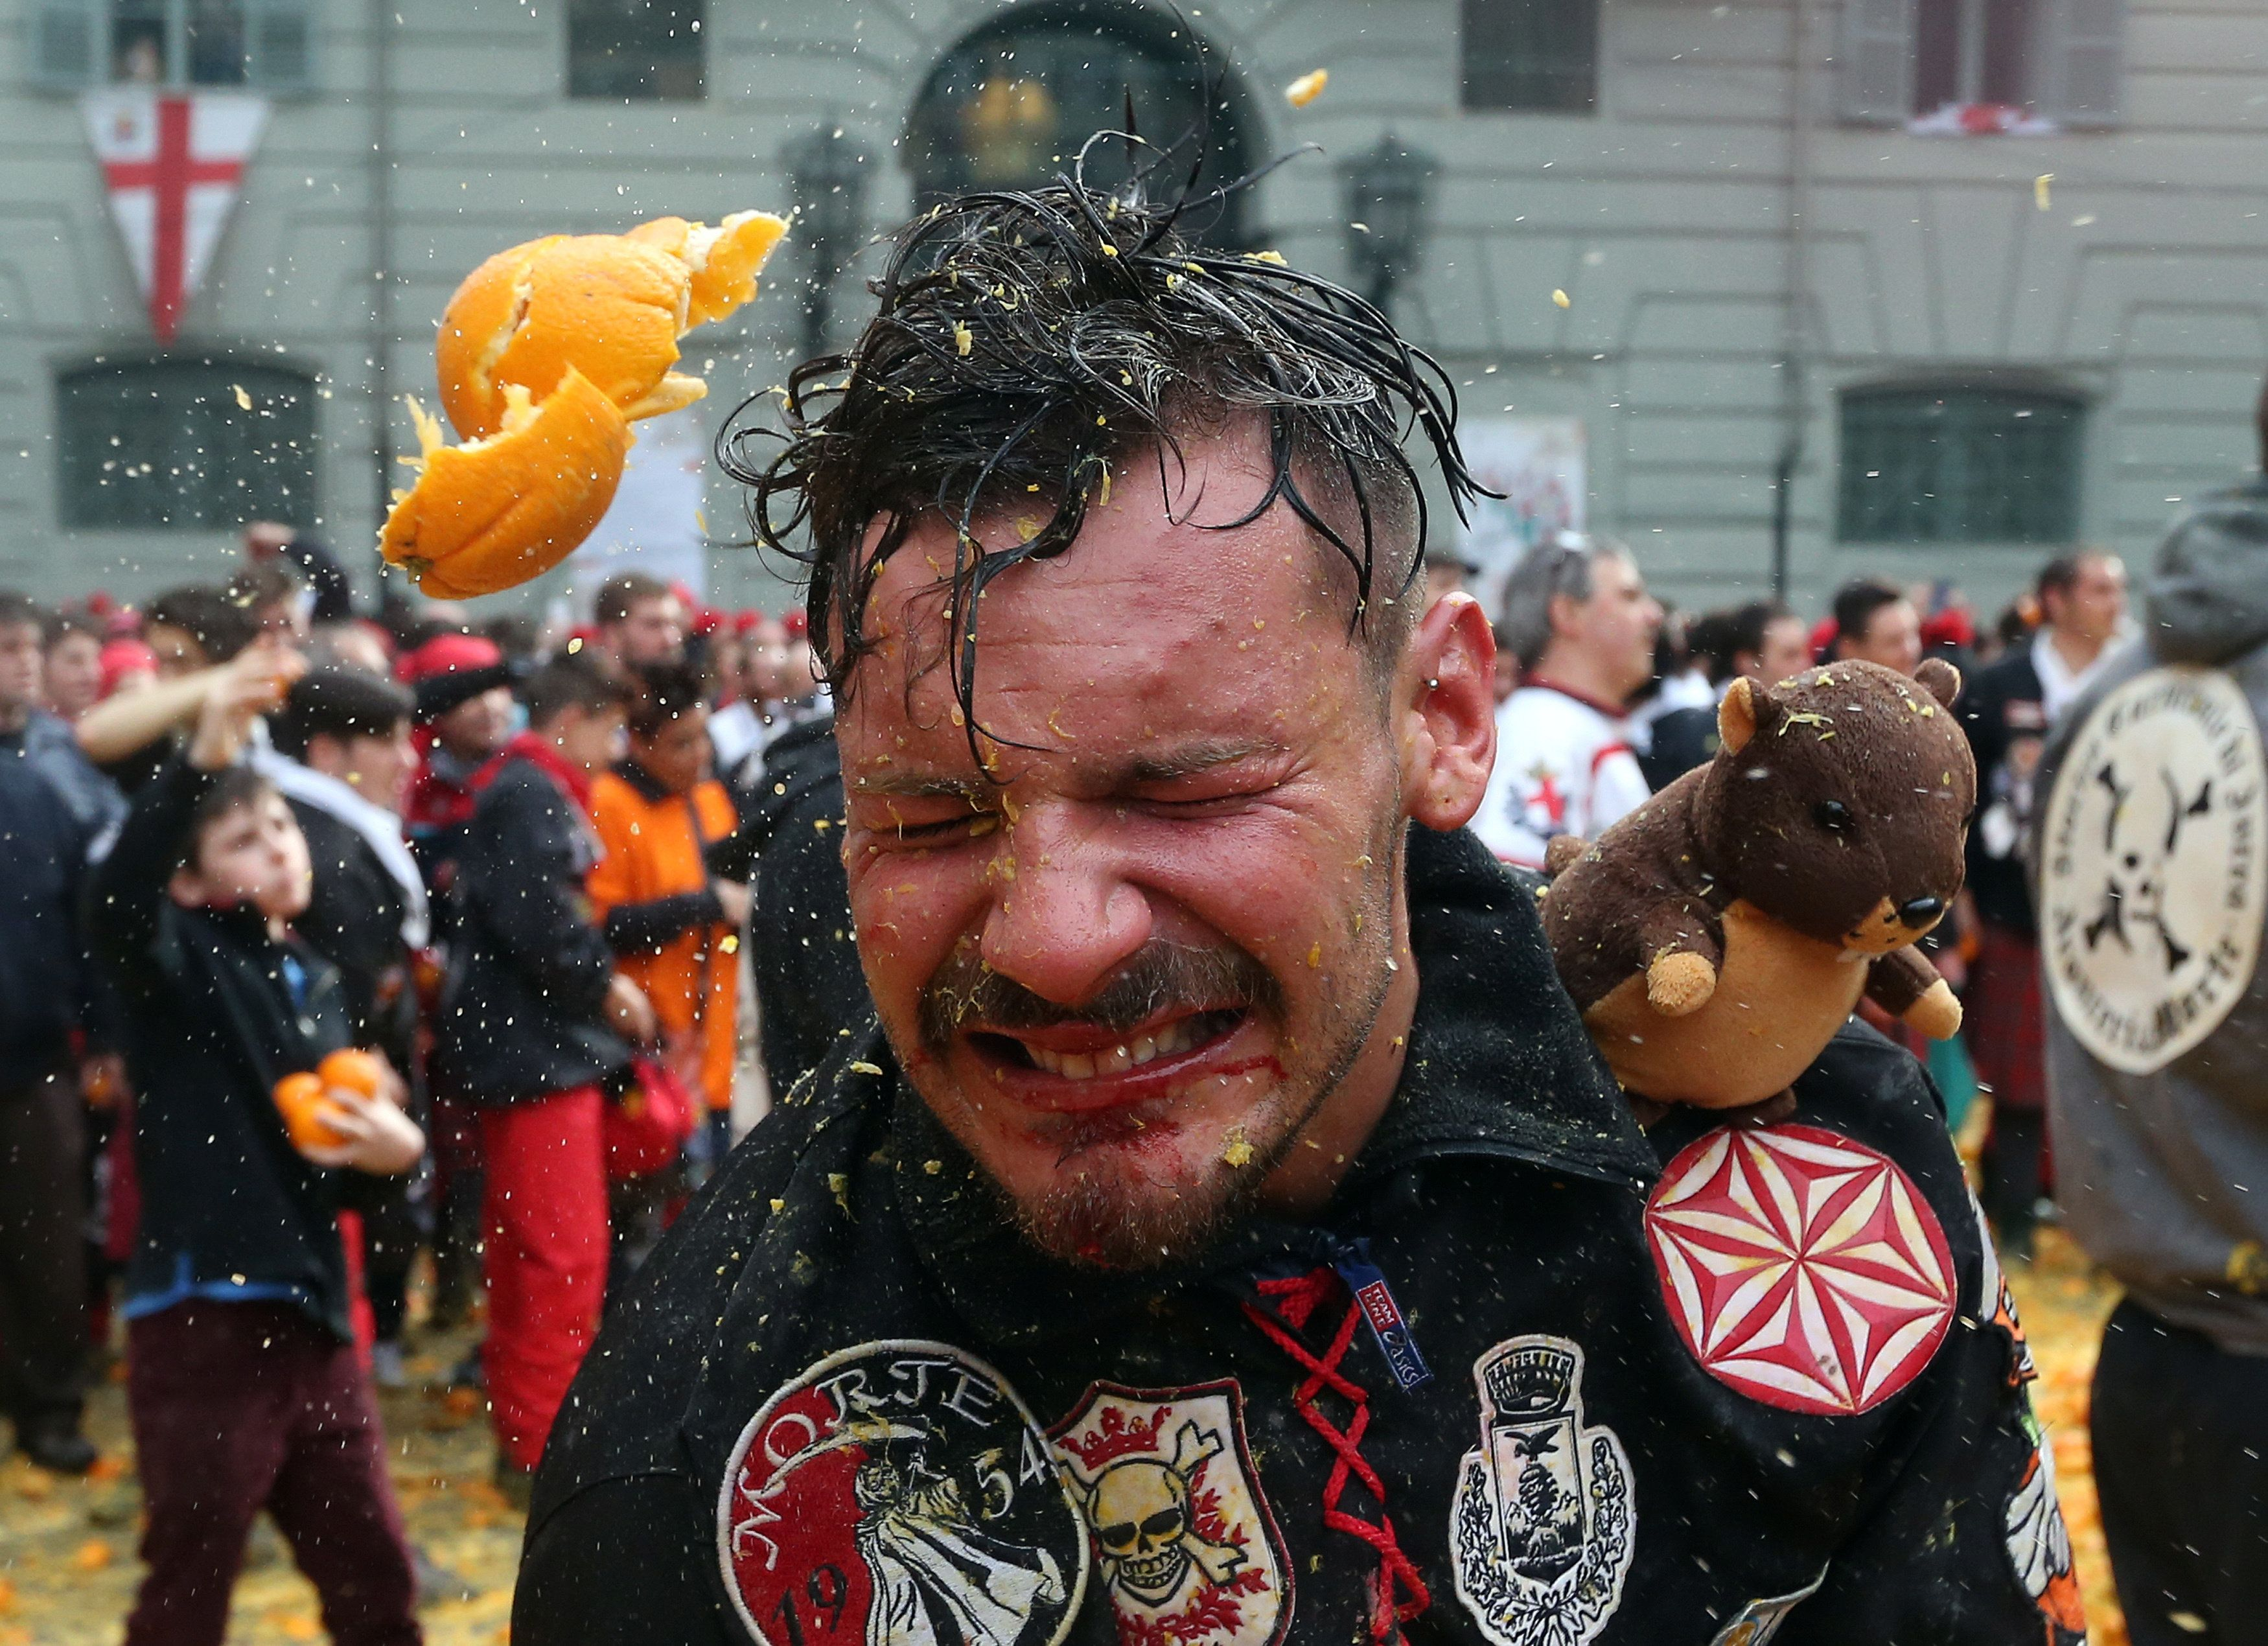 A man is hit by flying fruit during theannual Battle of the Oranges in the northern Italian town of Ivrea on Feb. 26, 2